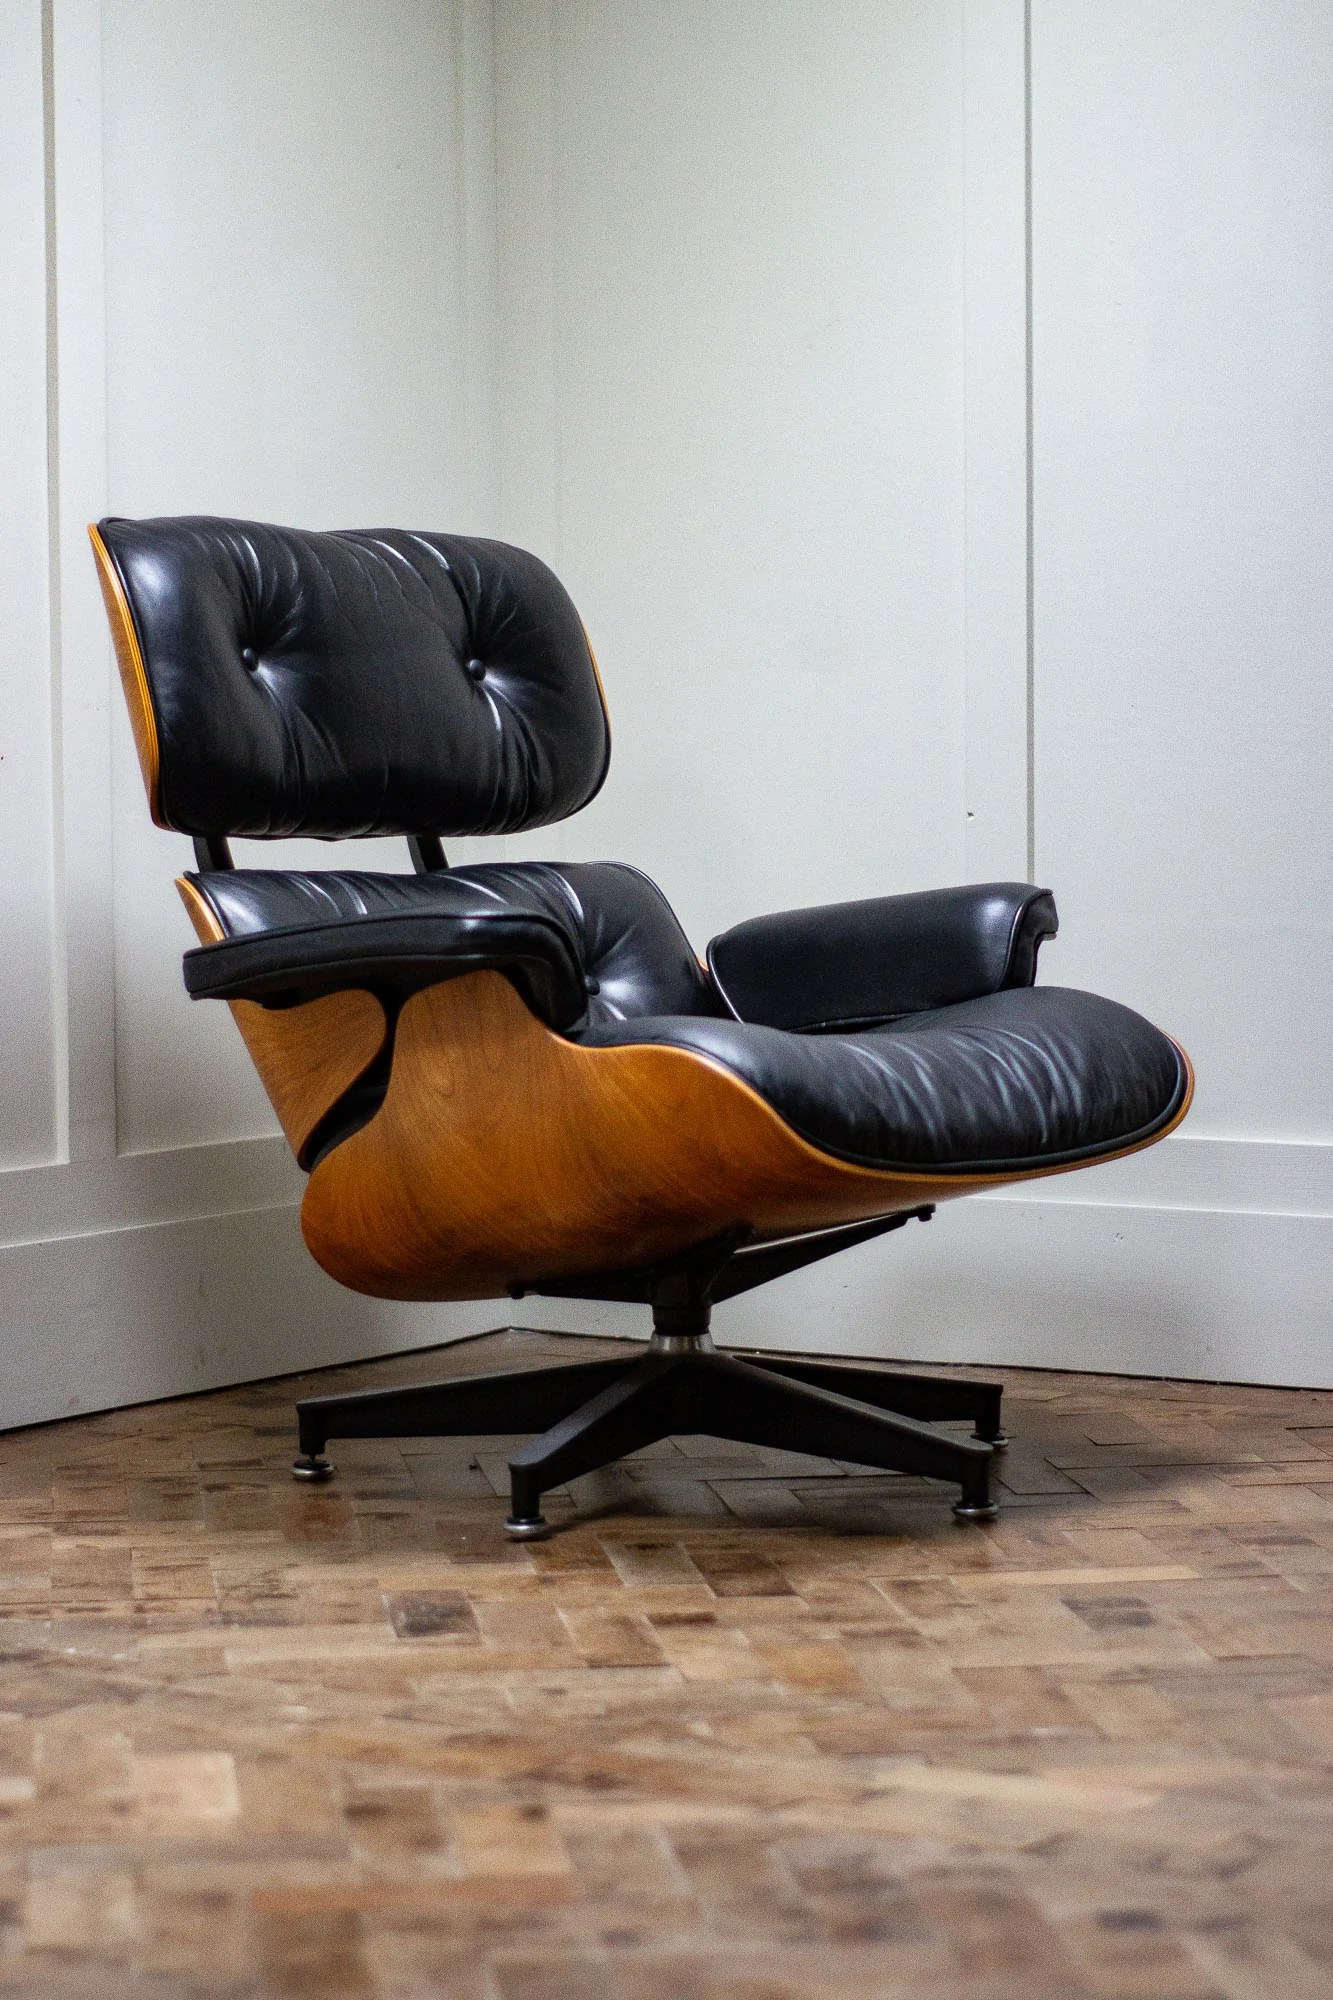 Charles Eames Lounge Chair Original Charles & Ray Eames Lounge Chair By Herman Miller - Alexandervanwall